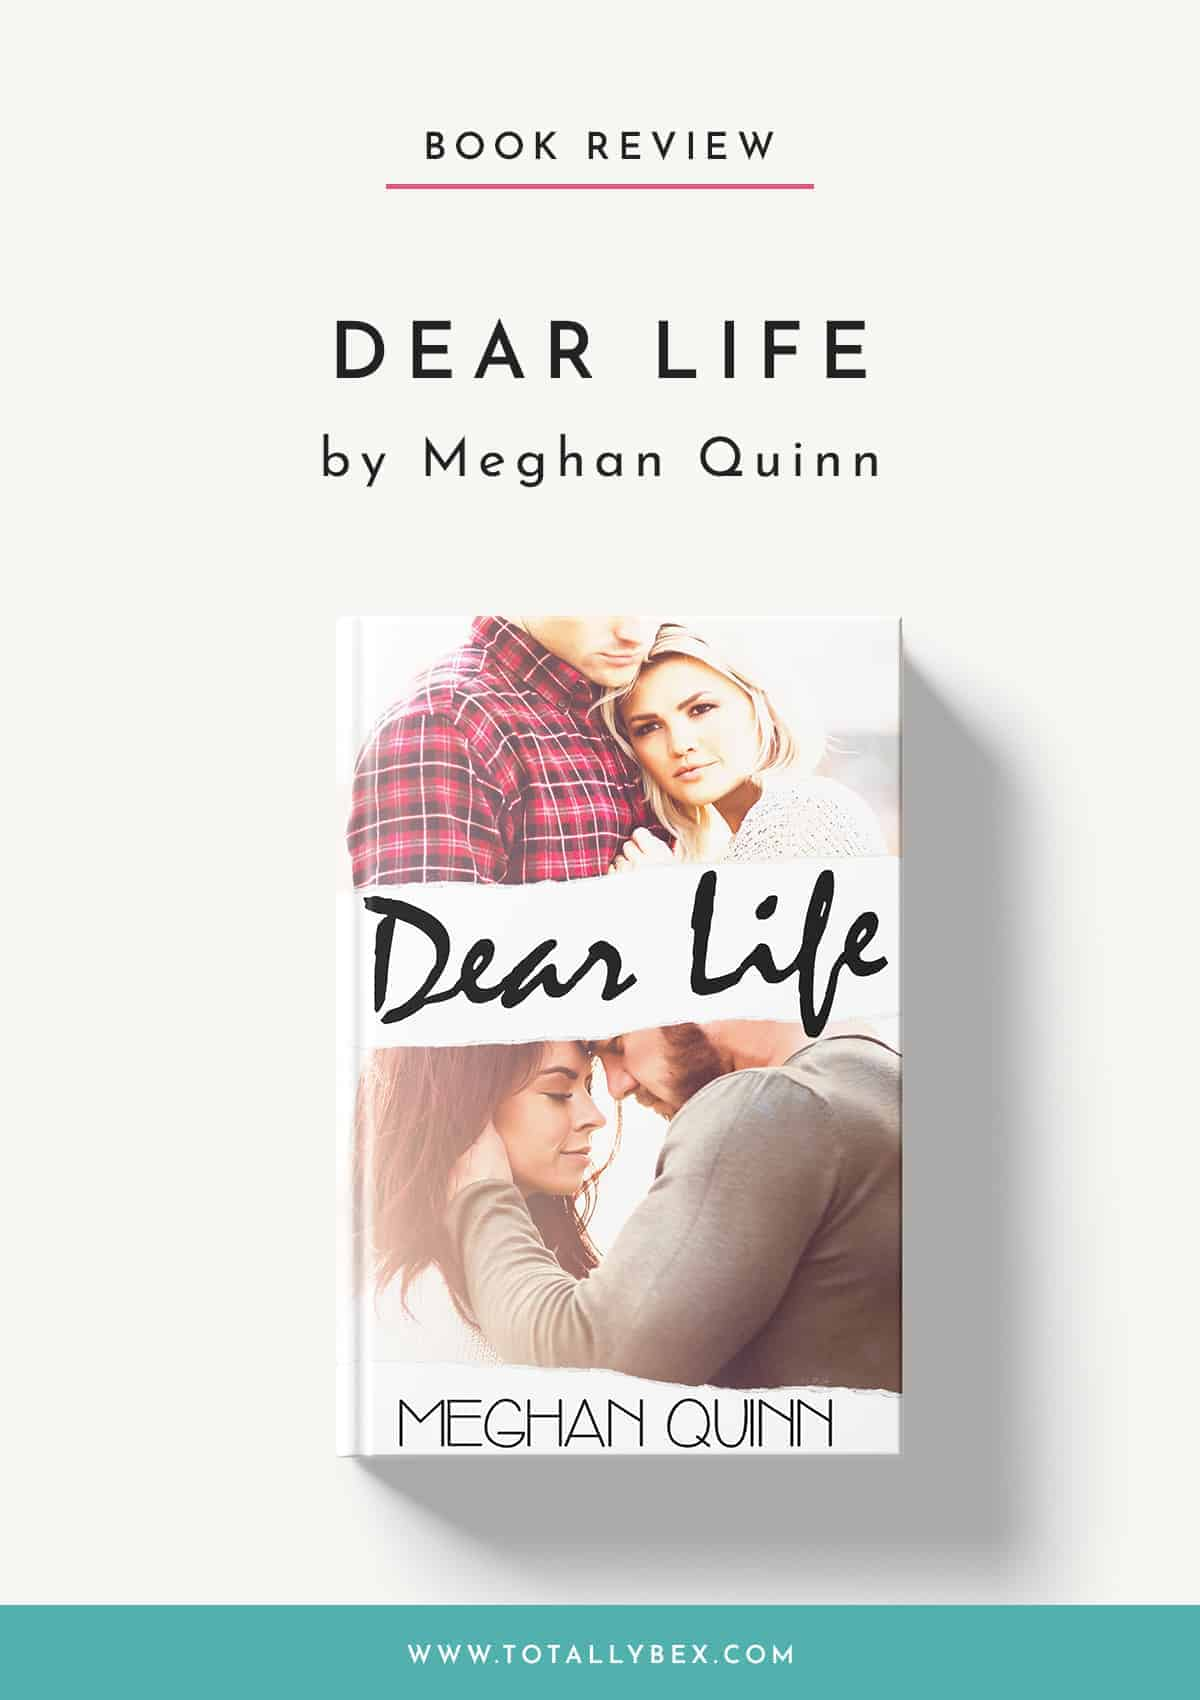 Dear Life by Meghan Quinn-Book Review